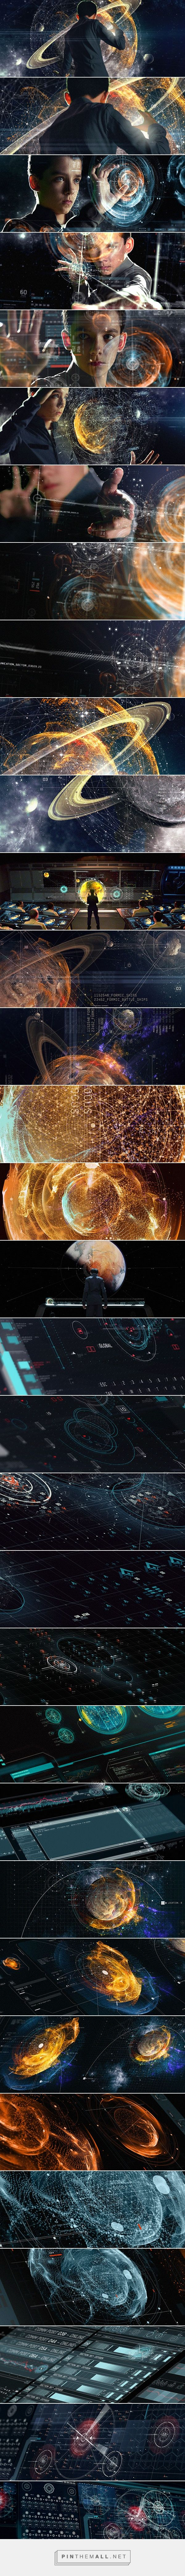 ENDERS GAME - UI/UX CONCEPTS on Behance - created via https://pinthemall.net